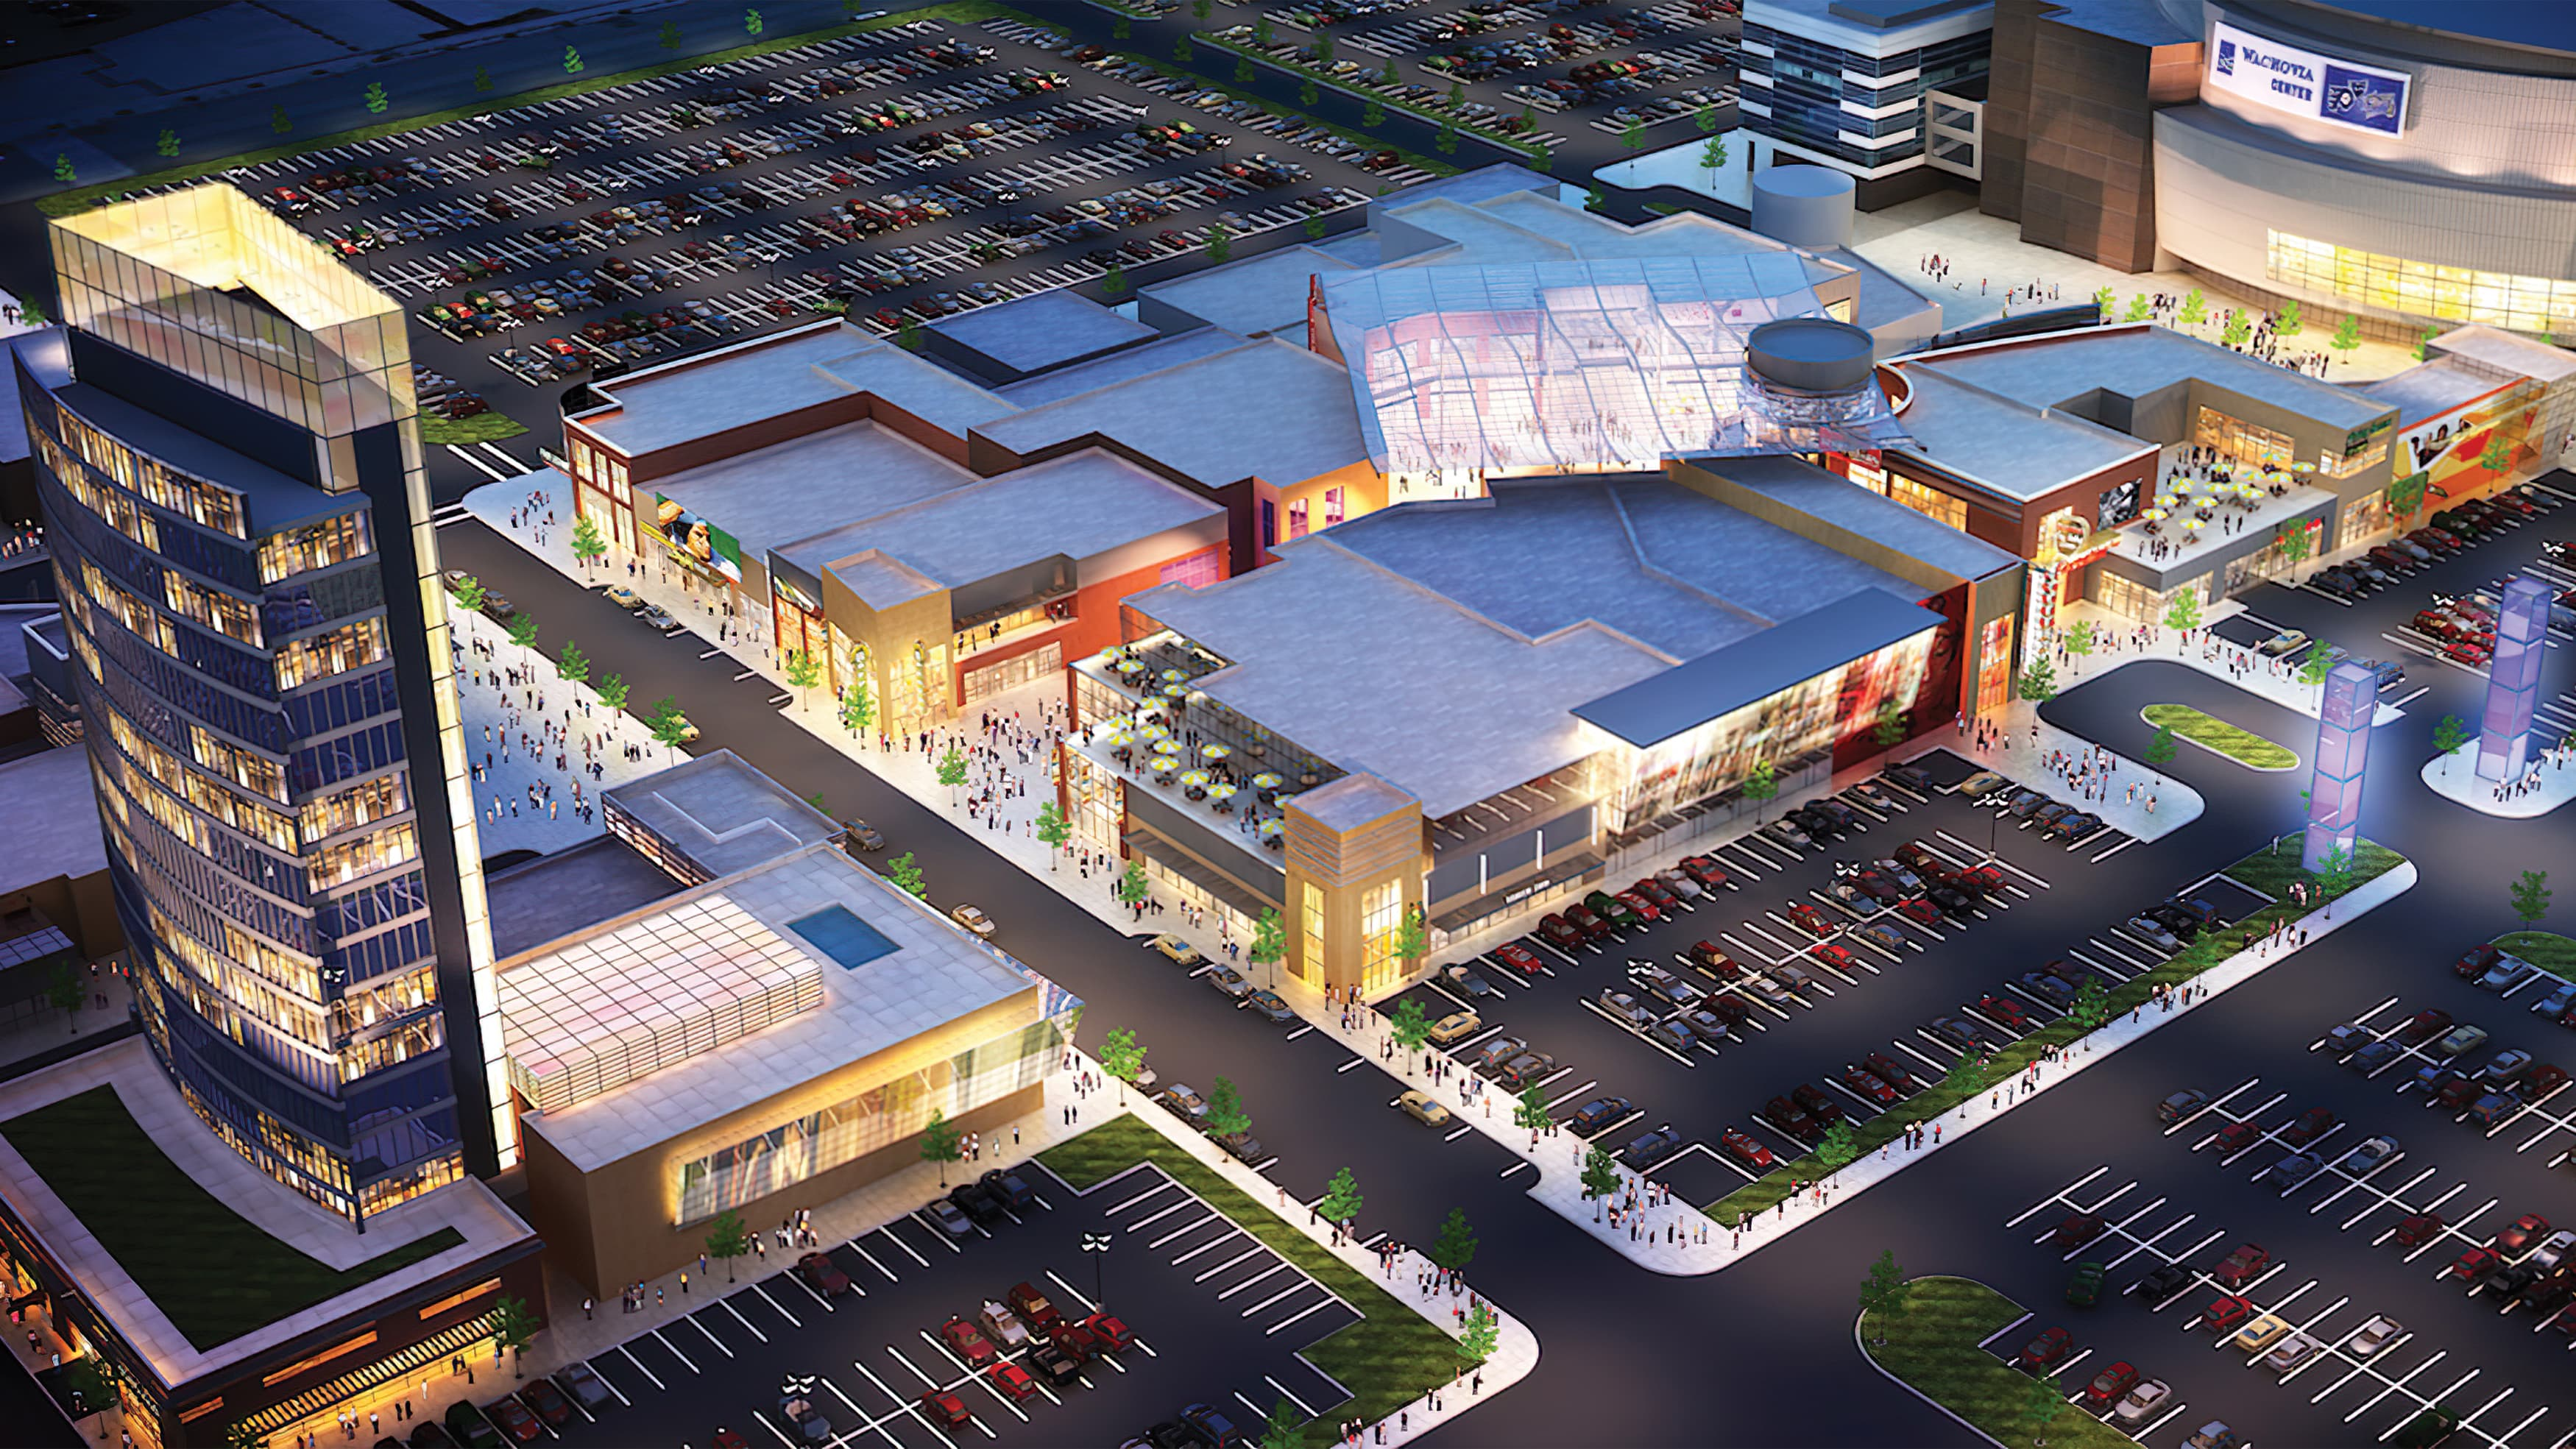 Architect's rendering of busy outdoor shopping center at dusk